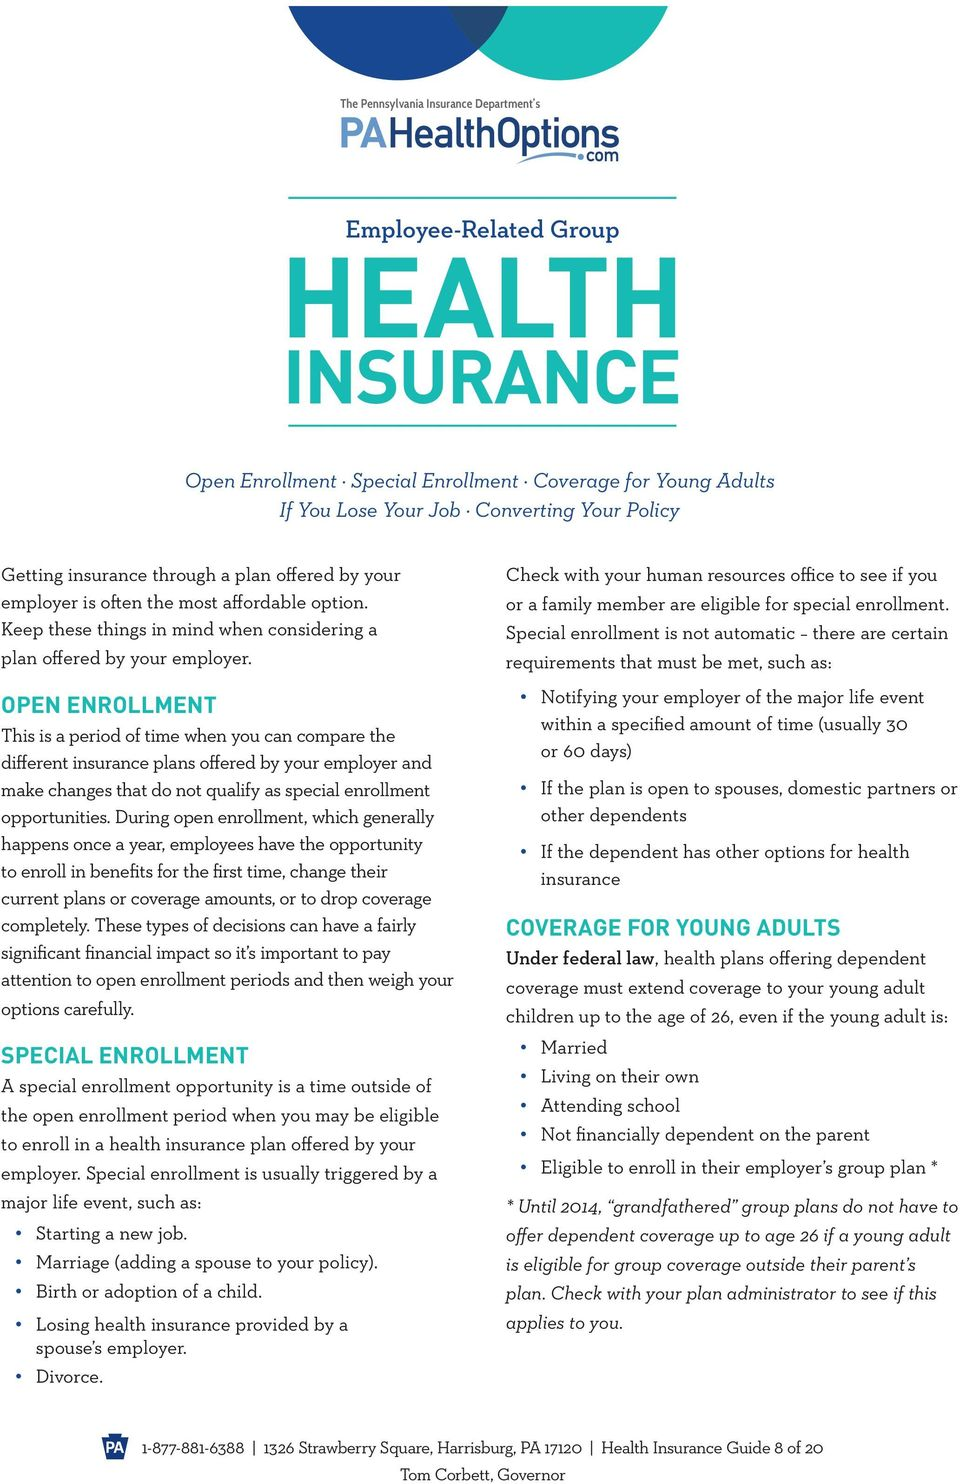 OPEN ENROLLMENT This is a period of time when you can compare the different insurance plans offered by your employer and make changes that do not qualify as special enrollment opportunities.